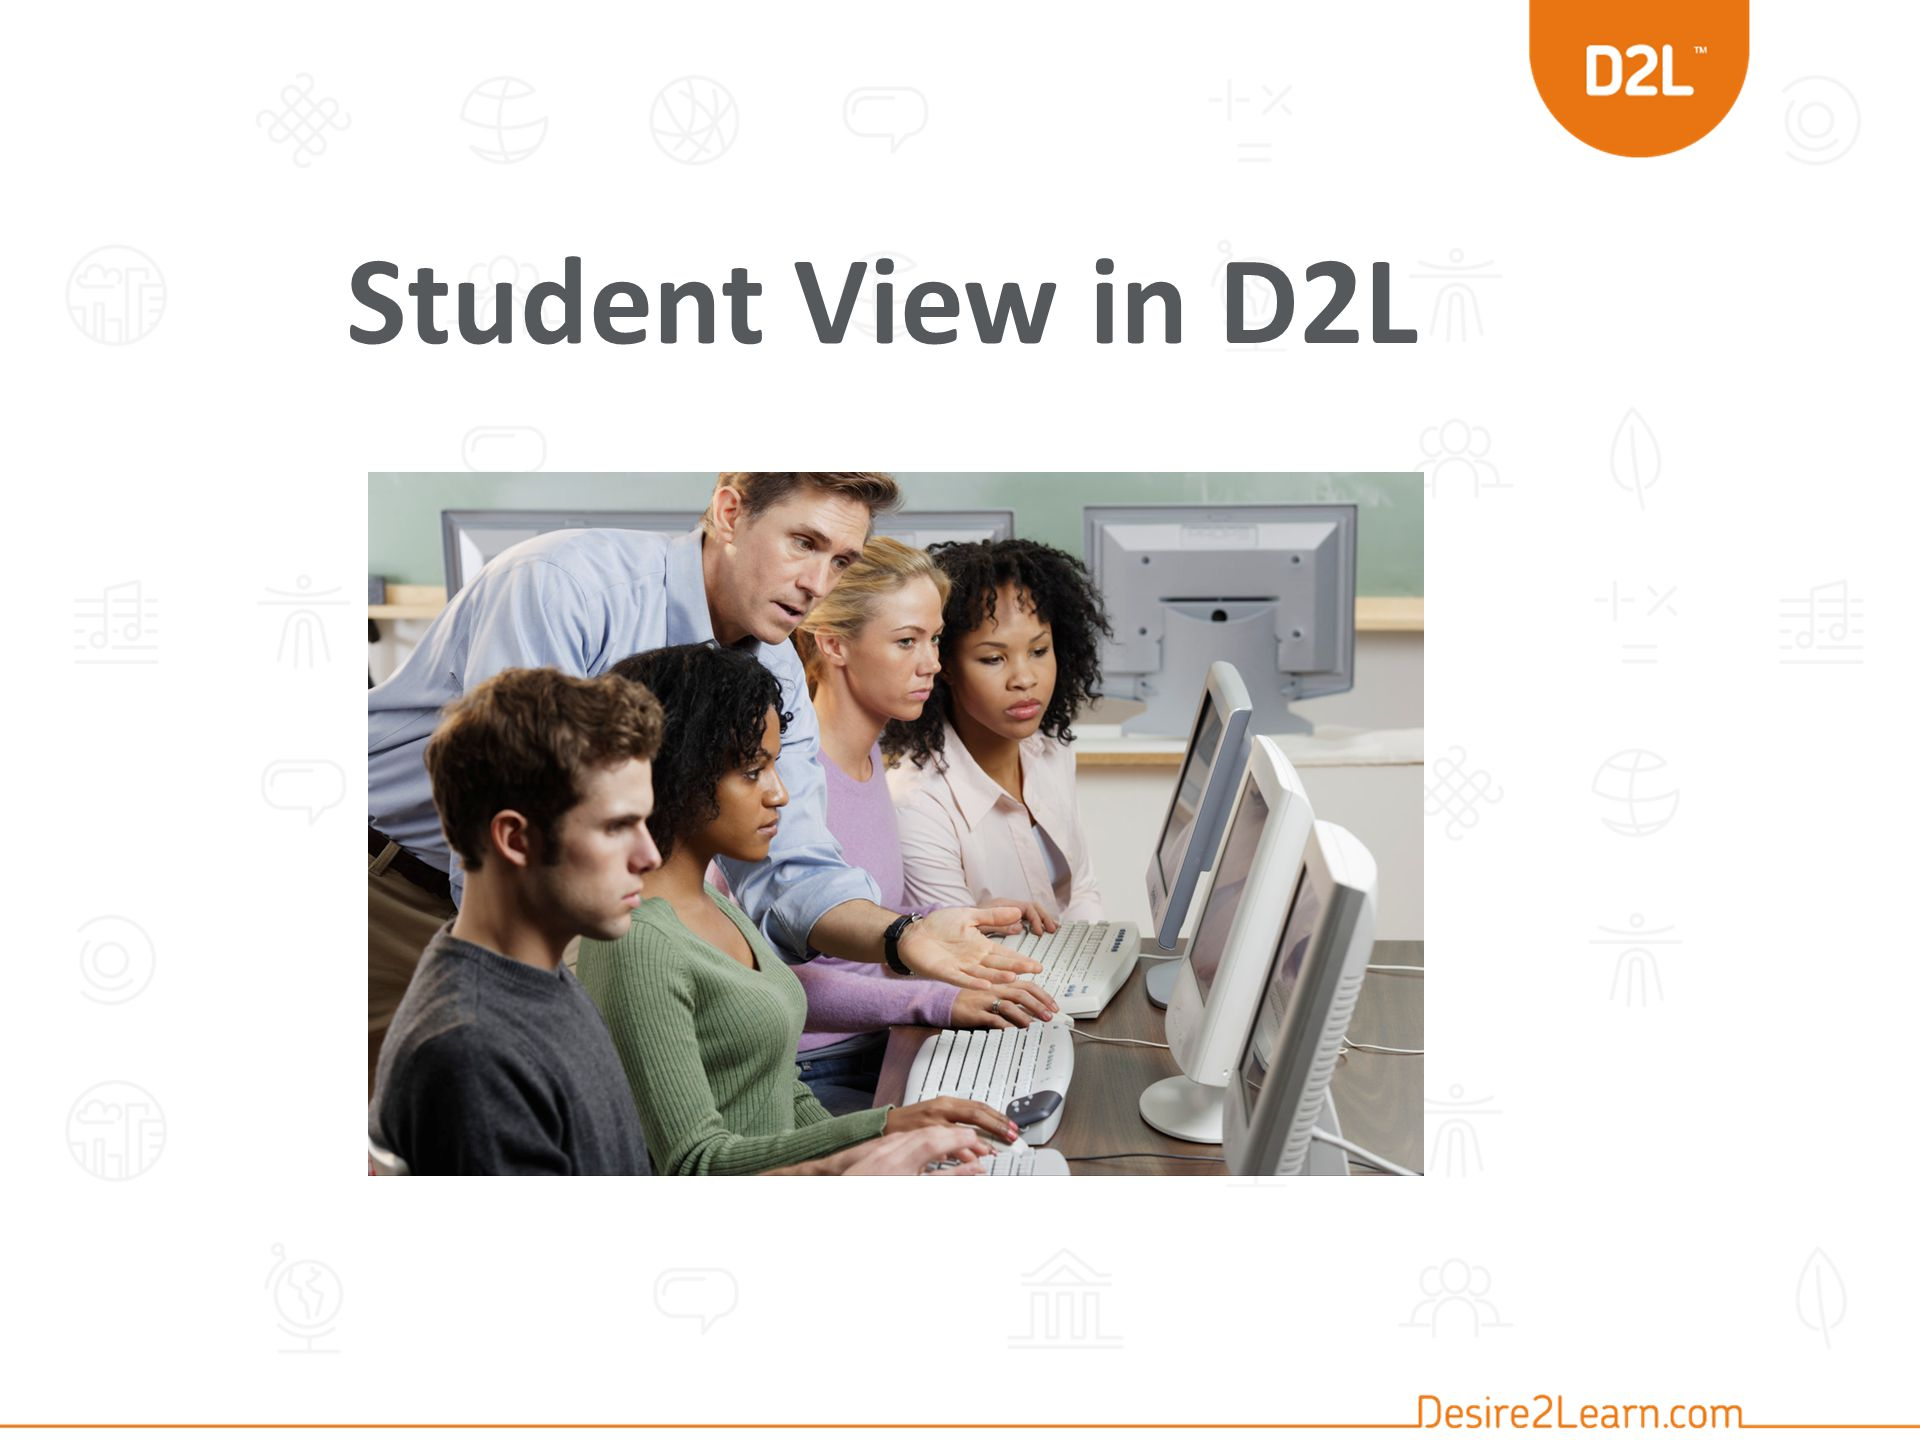 Student View in D2L